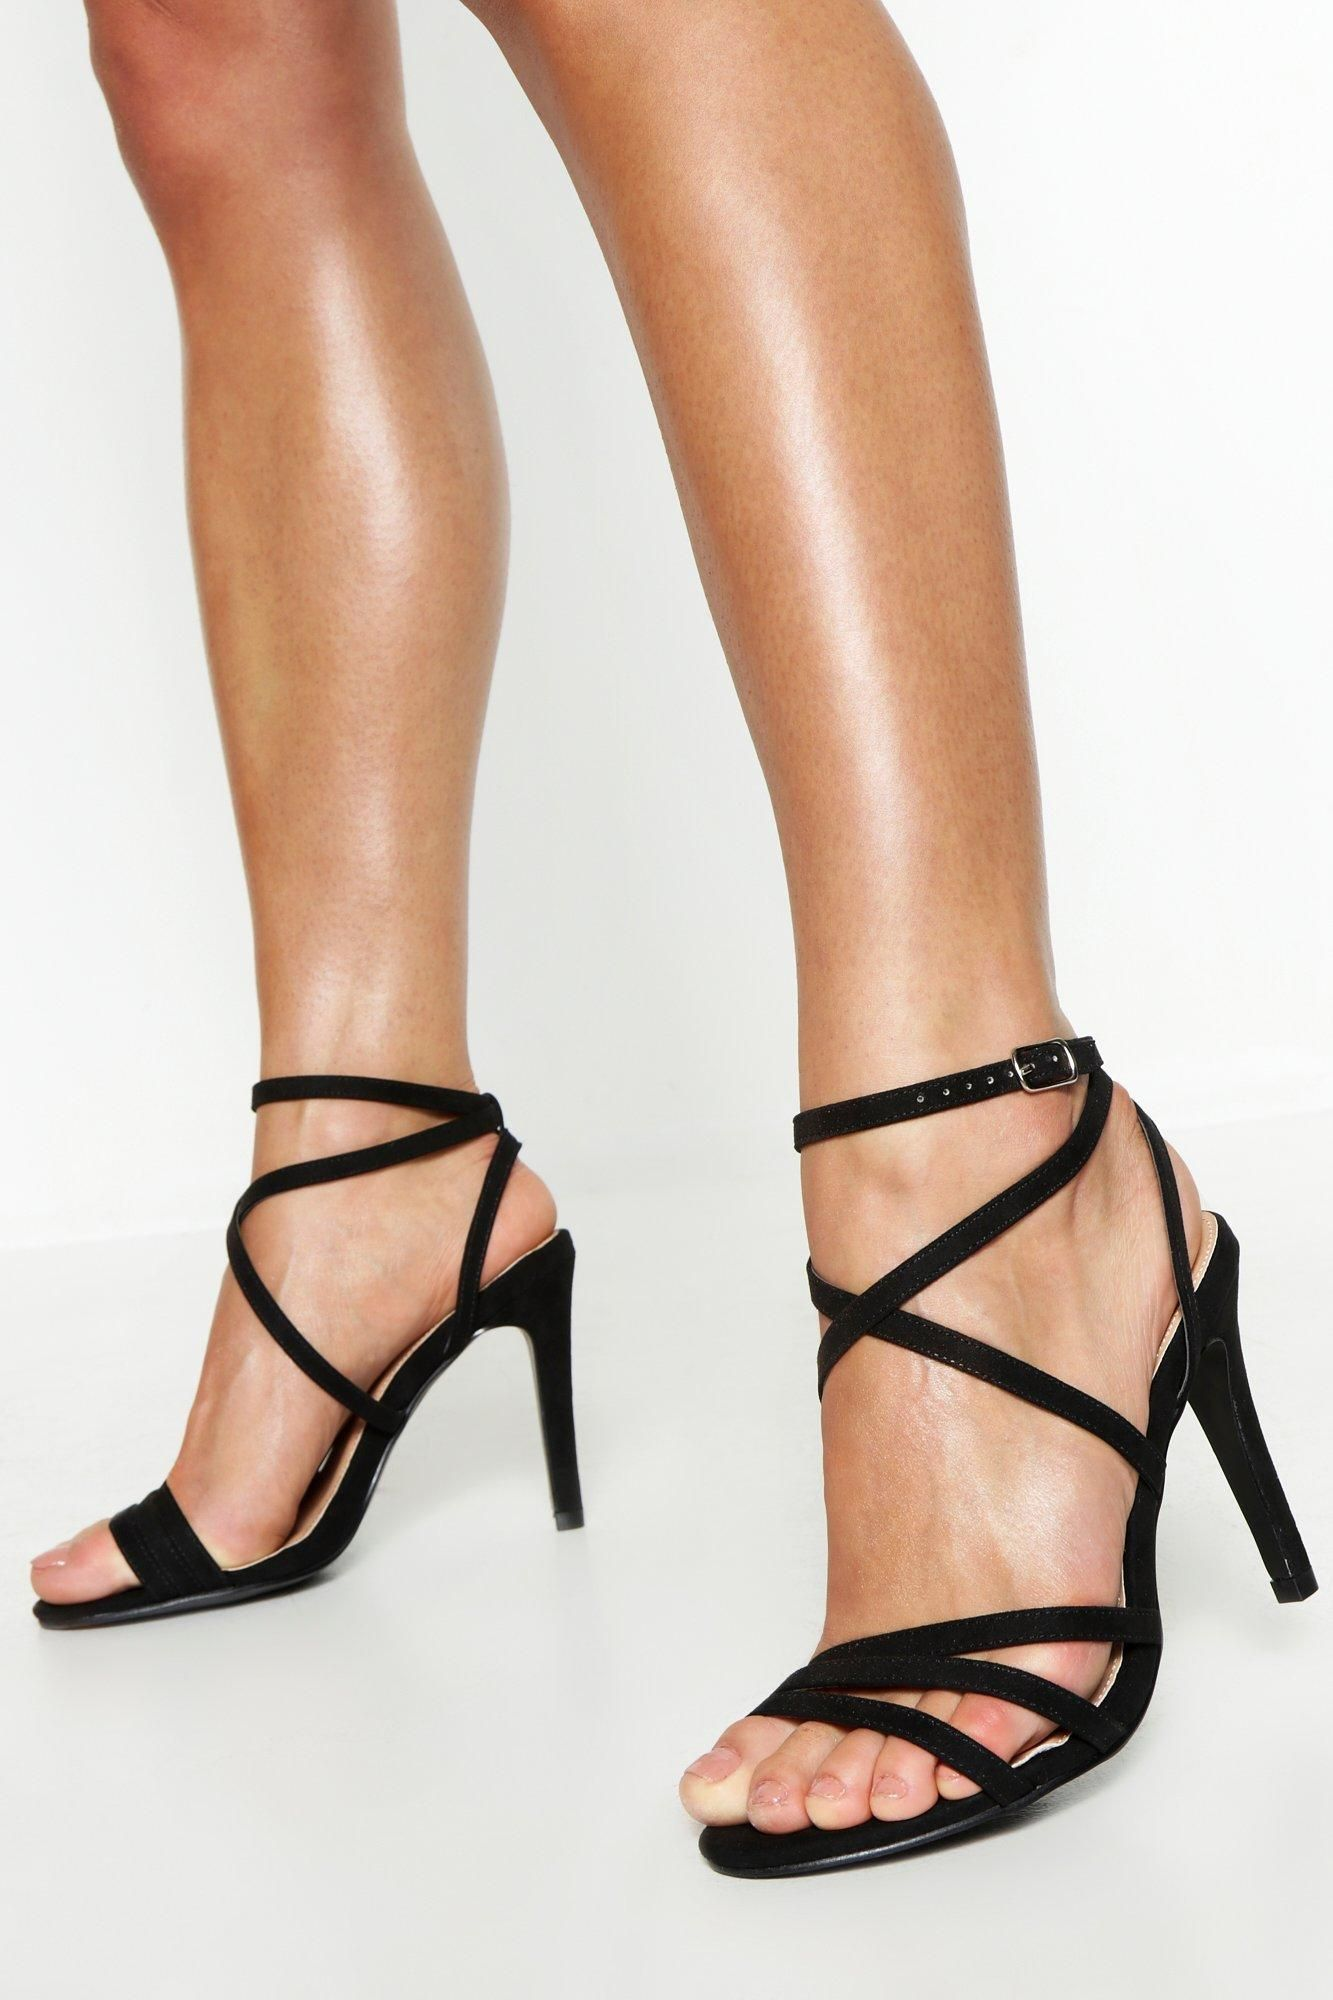 Womens Extra Wide Fit Strappy Heel Sandals Black 6 In 2020 Strappy Sandals Heels Sandals Heels Black Sandals Heels